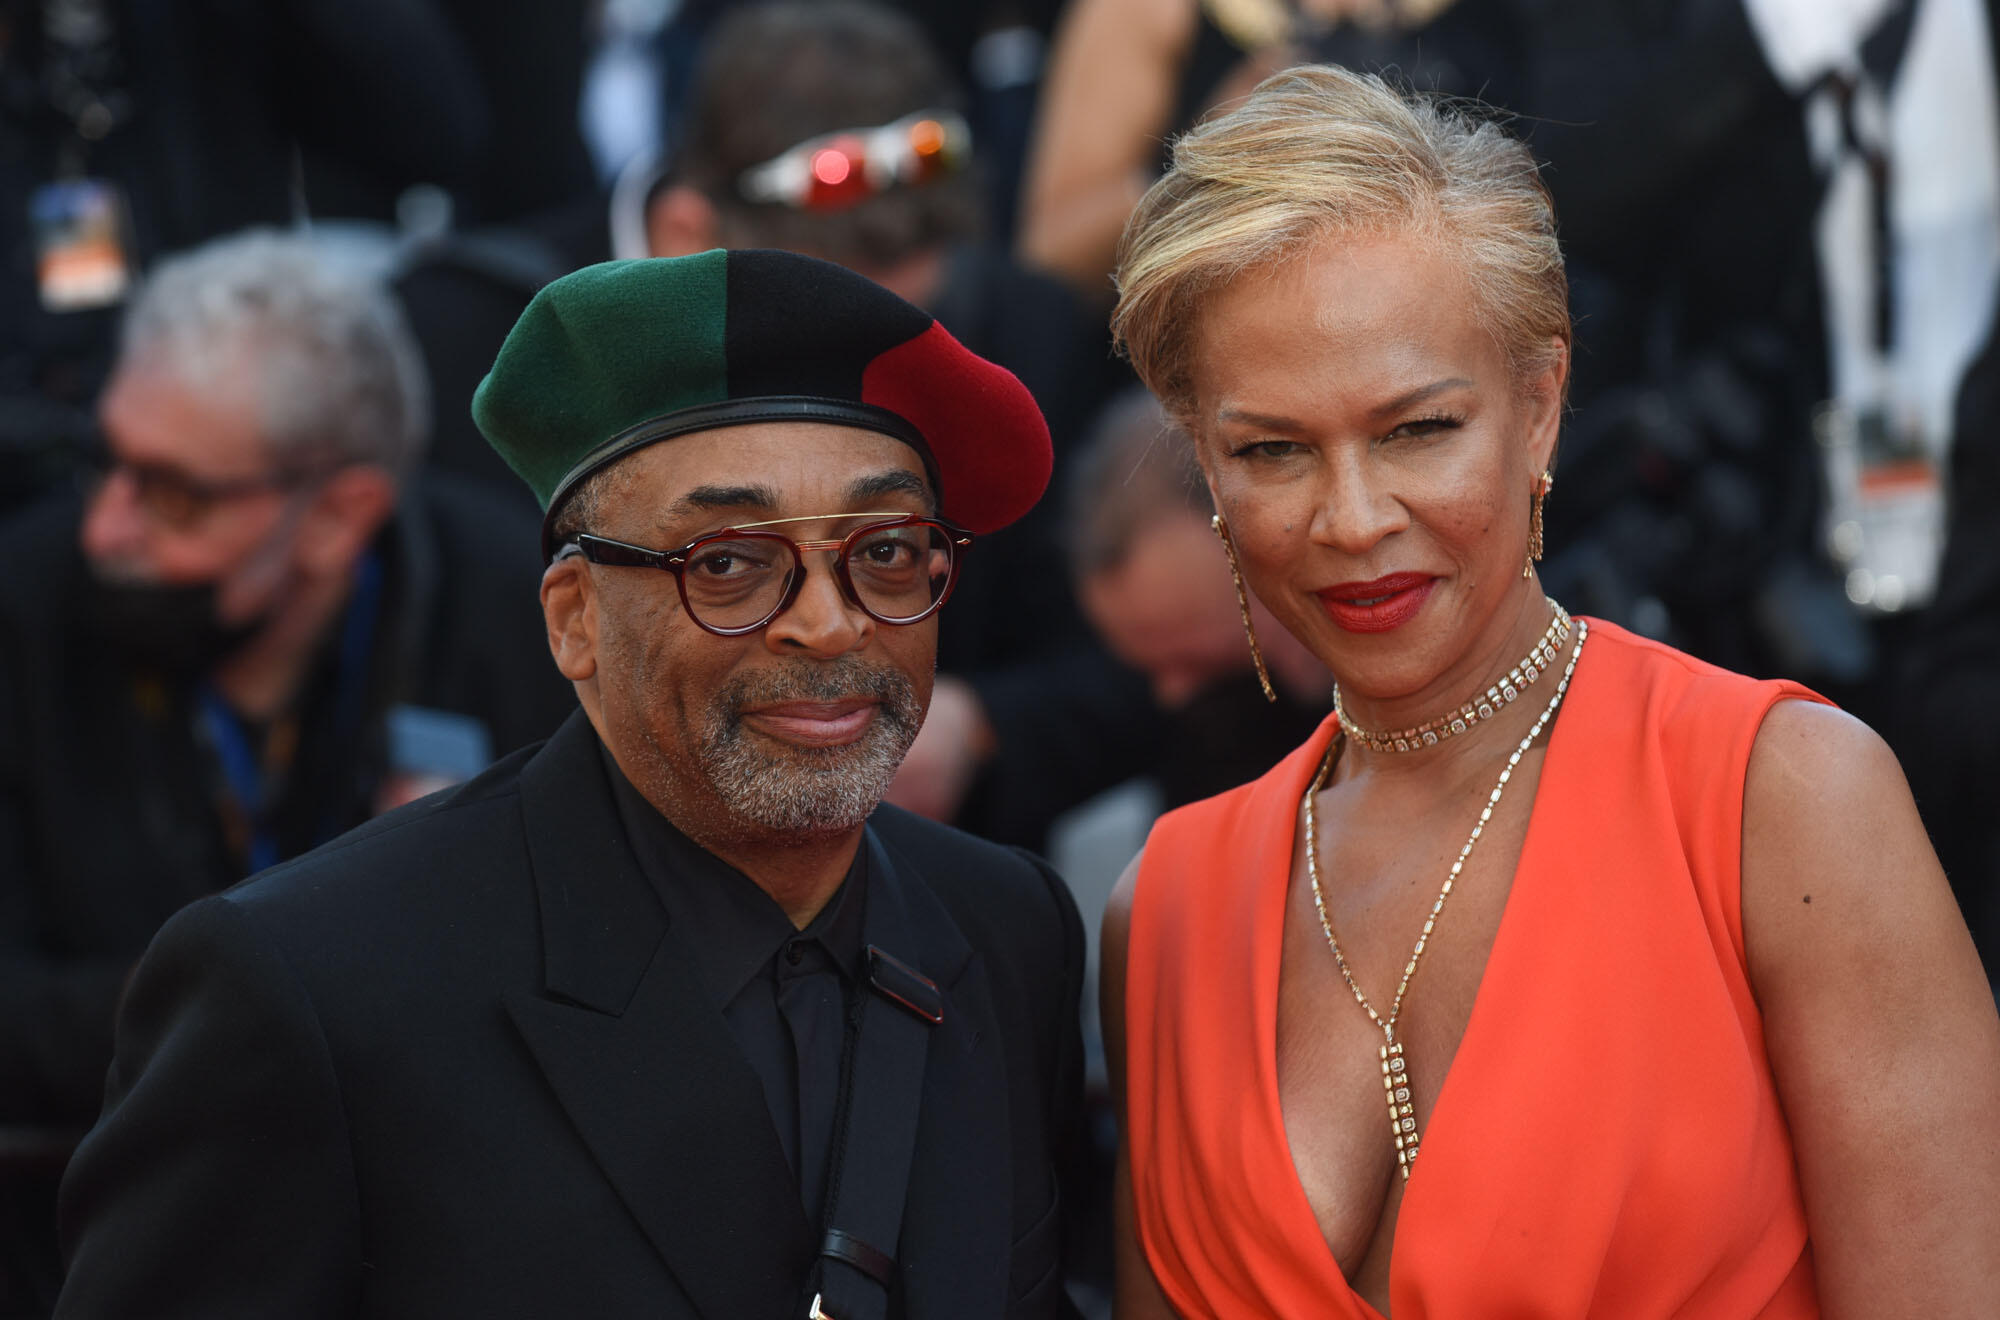 """Jury Chief Spike Lee and his wife Tonya Lewis Lee attend the premiere of Paul Verhoeven's """"Benedetta""""."""